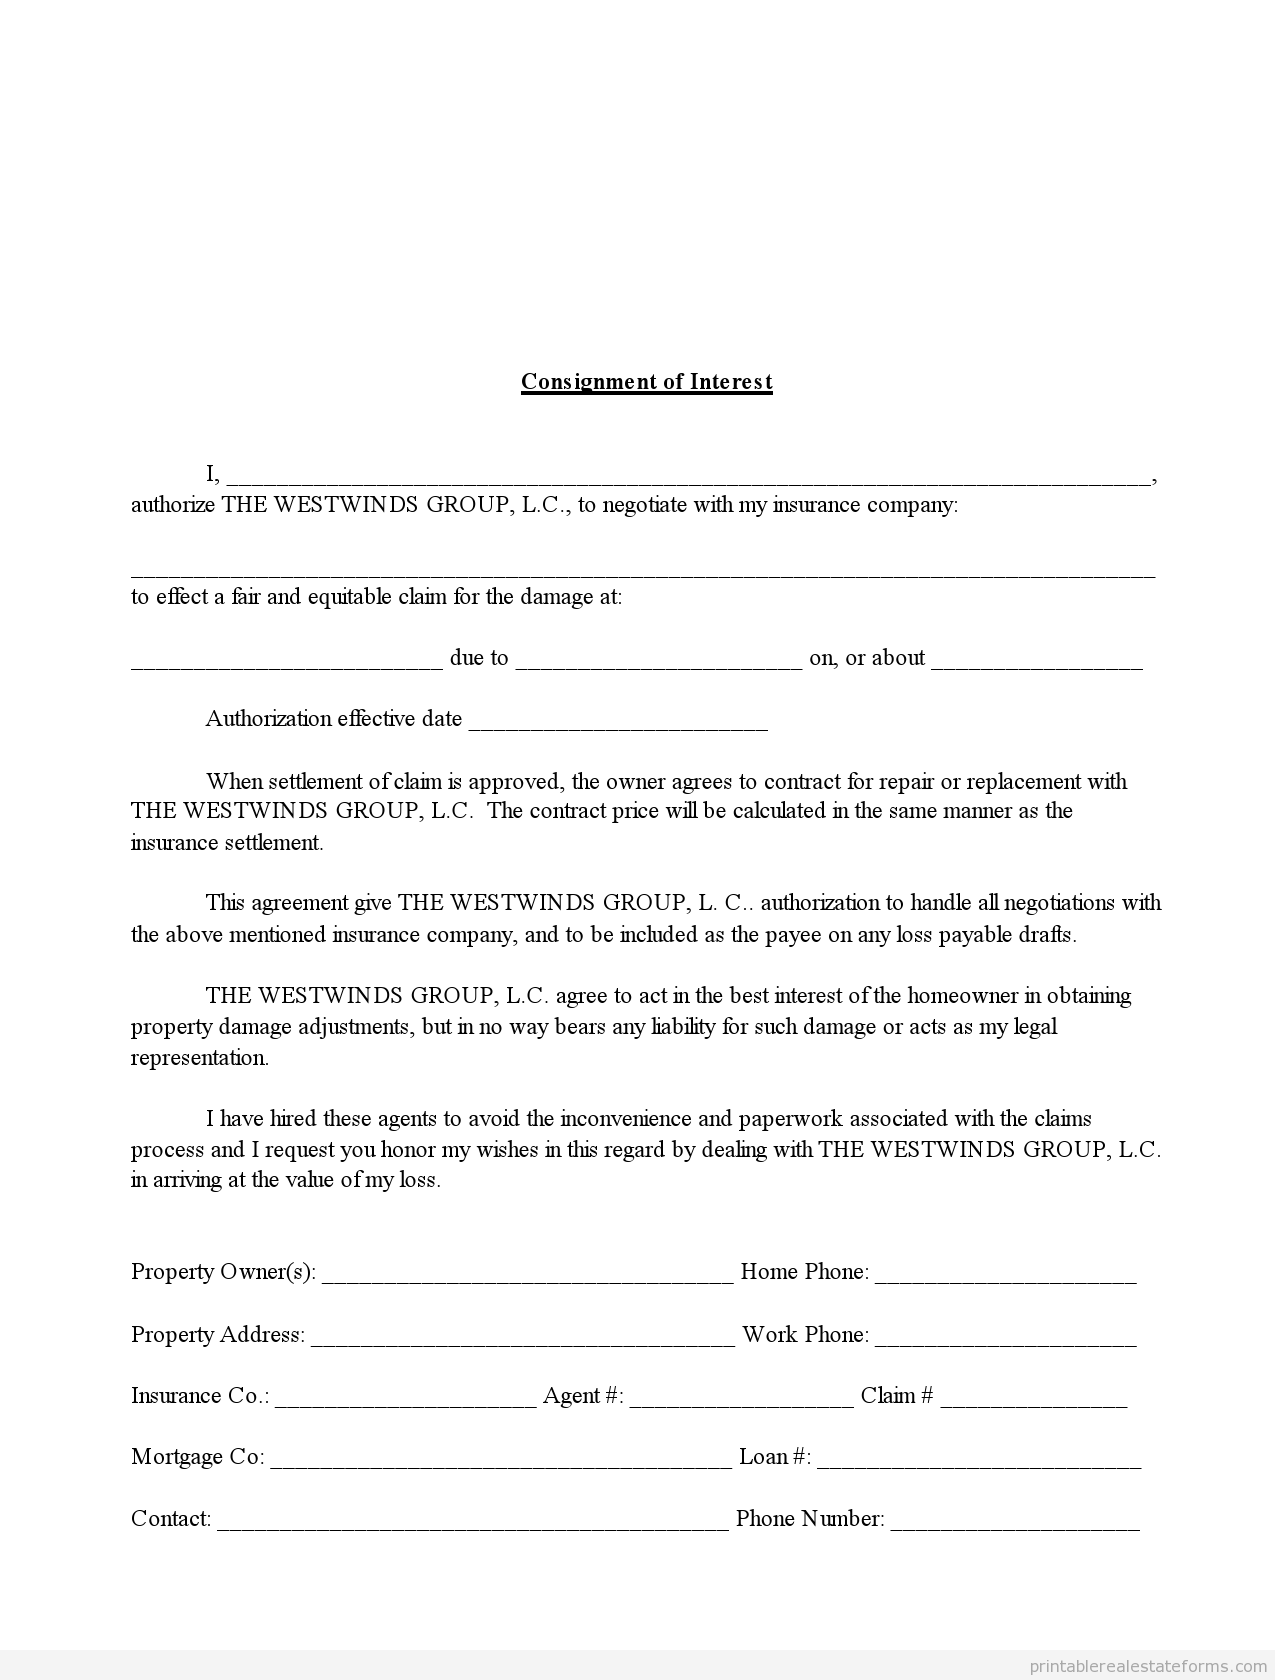 Sample Printable Consignment Of Interest In Insurance Claim Form